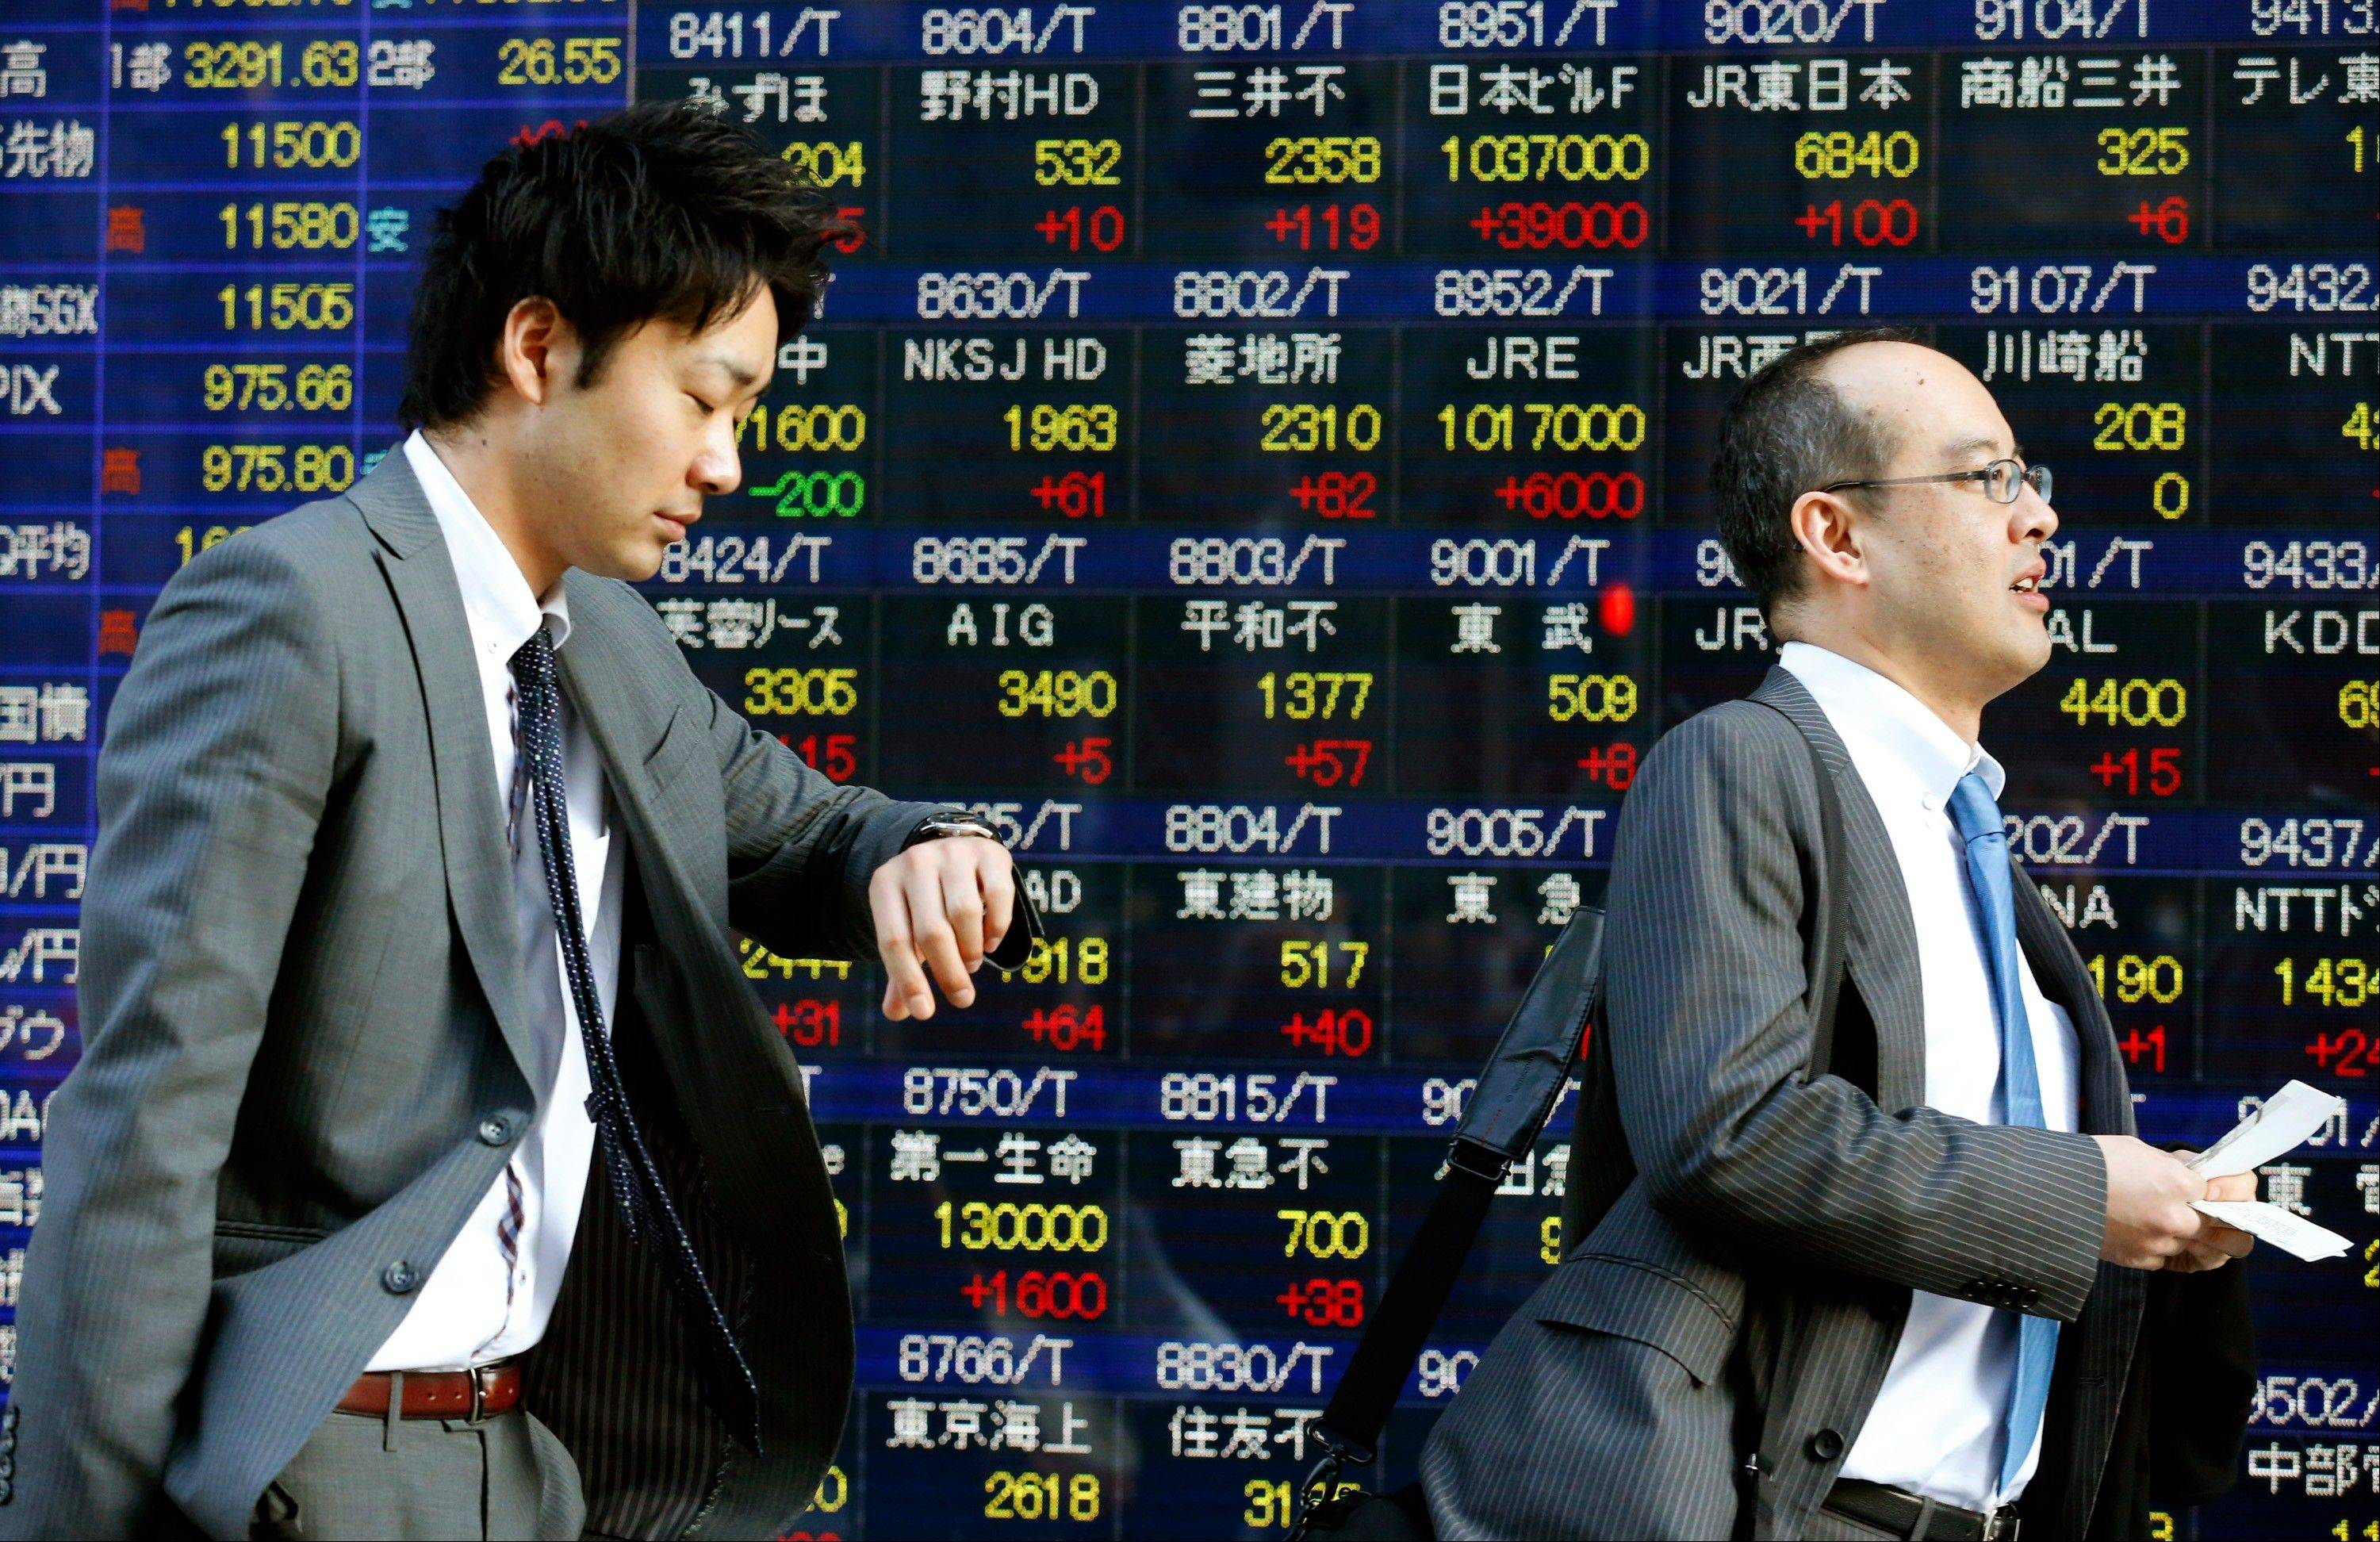 A man looks at his watch Thursday while walking in front of an electronic stock indicator in Tokyo. Asian stock markets rose Thursday as positive economic indicators and the nomination of a pro-stimulus Bank of Japan chief bolstered hopes for faster growth. The Nikkei 225 stock average closed at 11,559.36, up 2.7 percent.